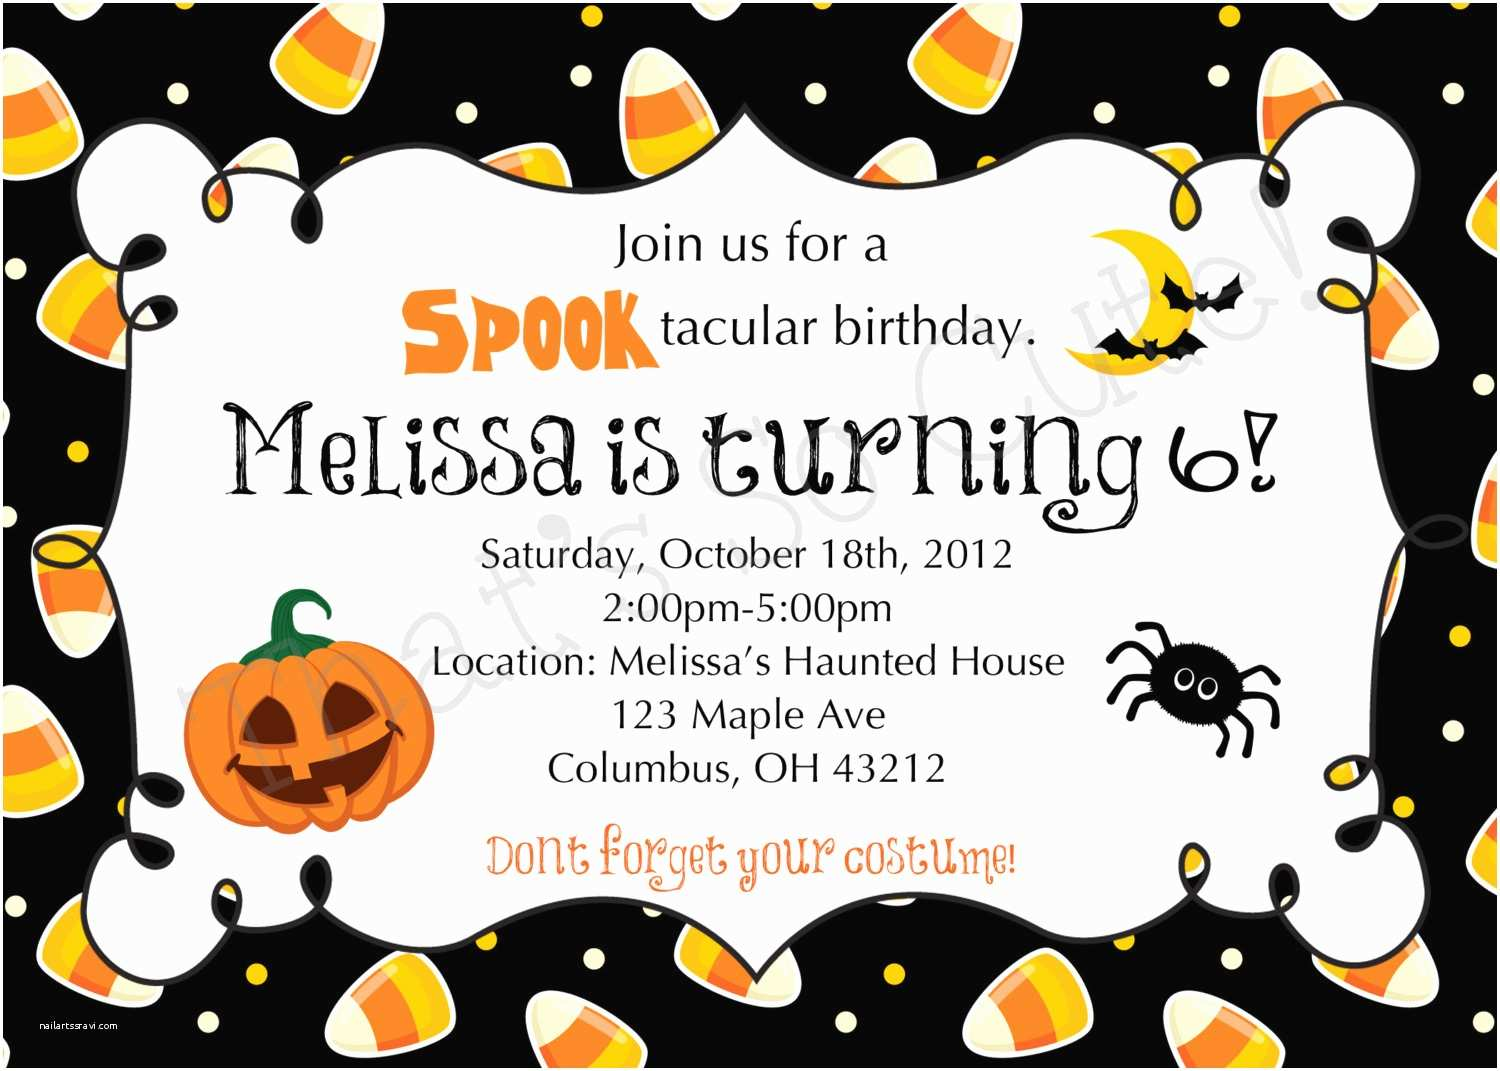 Halloween themed Birthday Party Invitations Halloween themed Birthday Party Invitations